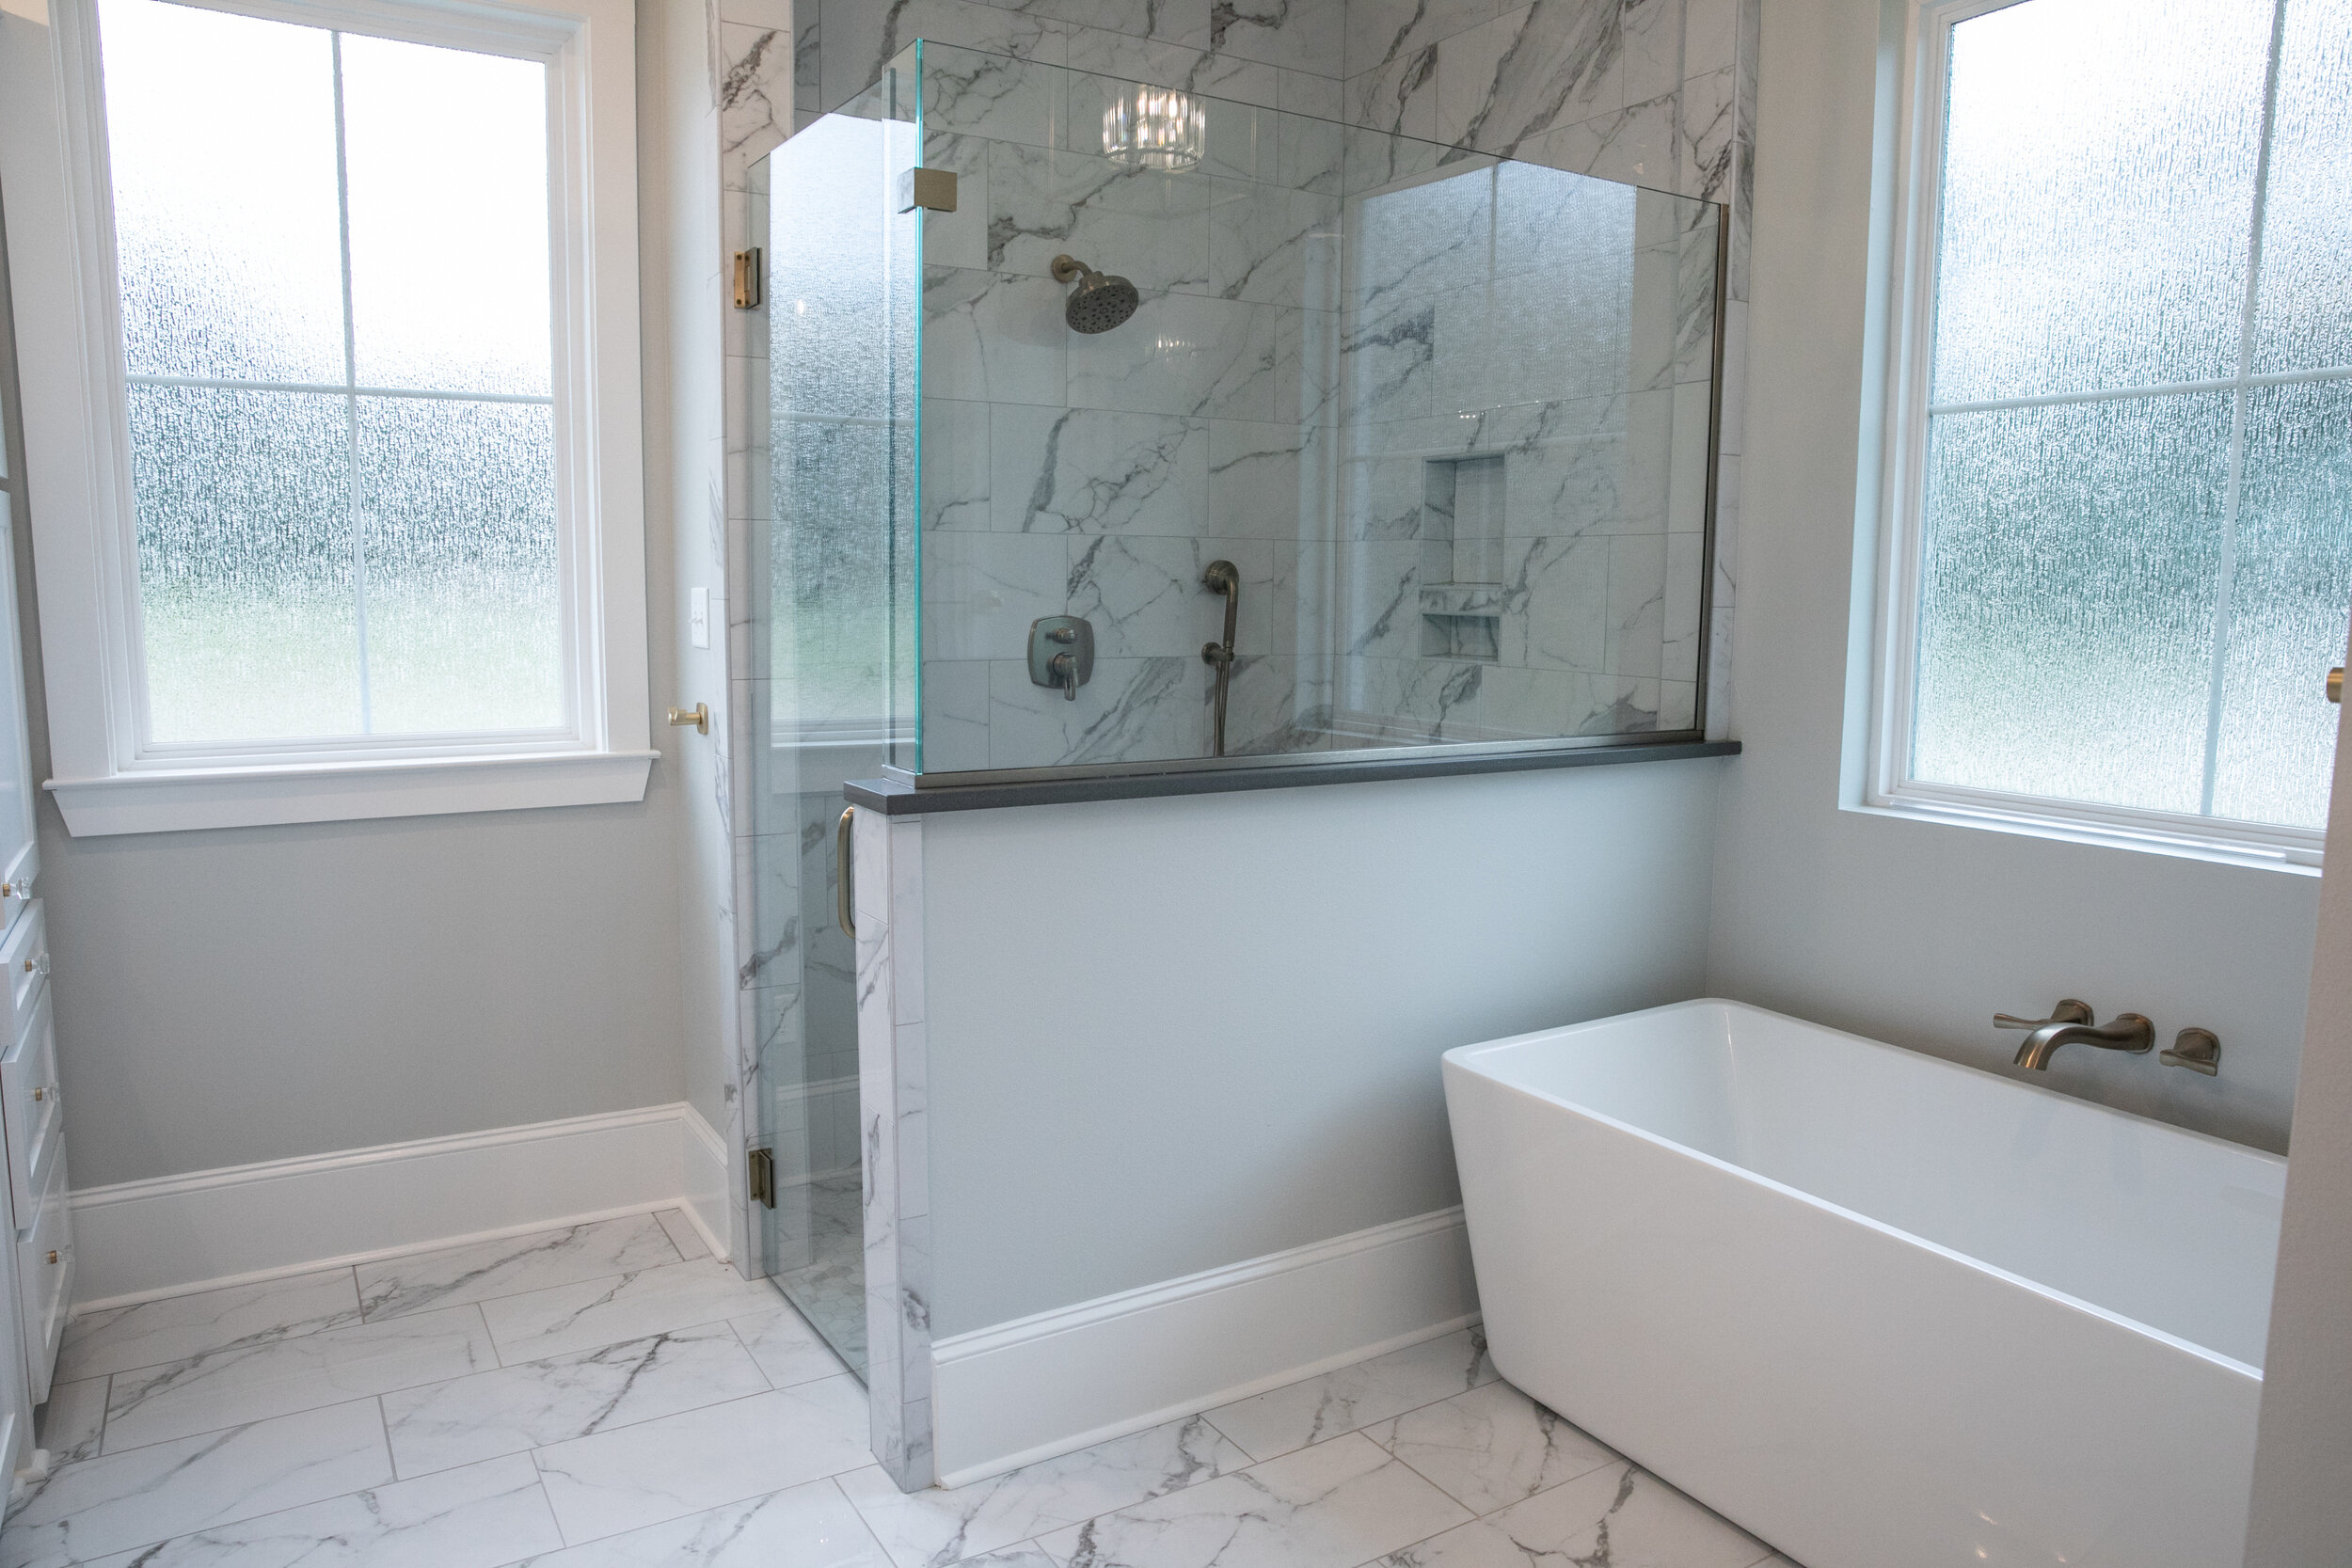 Working with a design expert can help you avoid problems later down the road by ensuring that your shower is built for longevity.